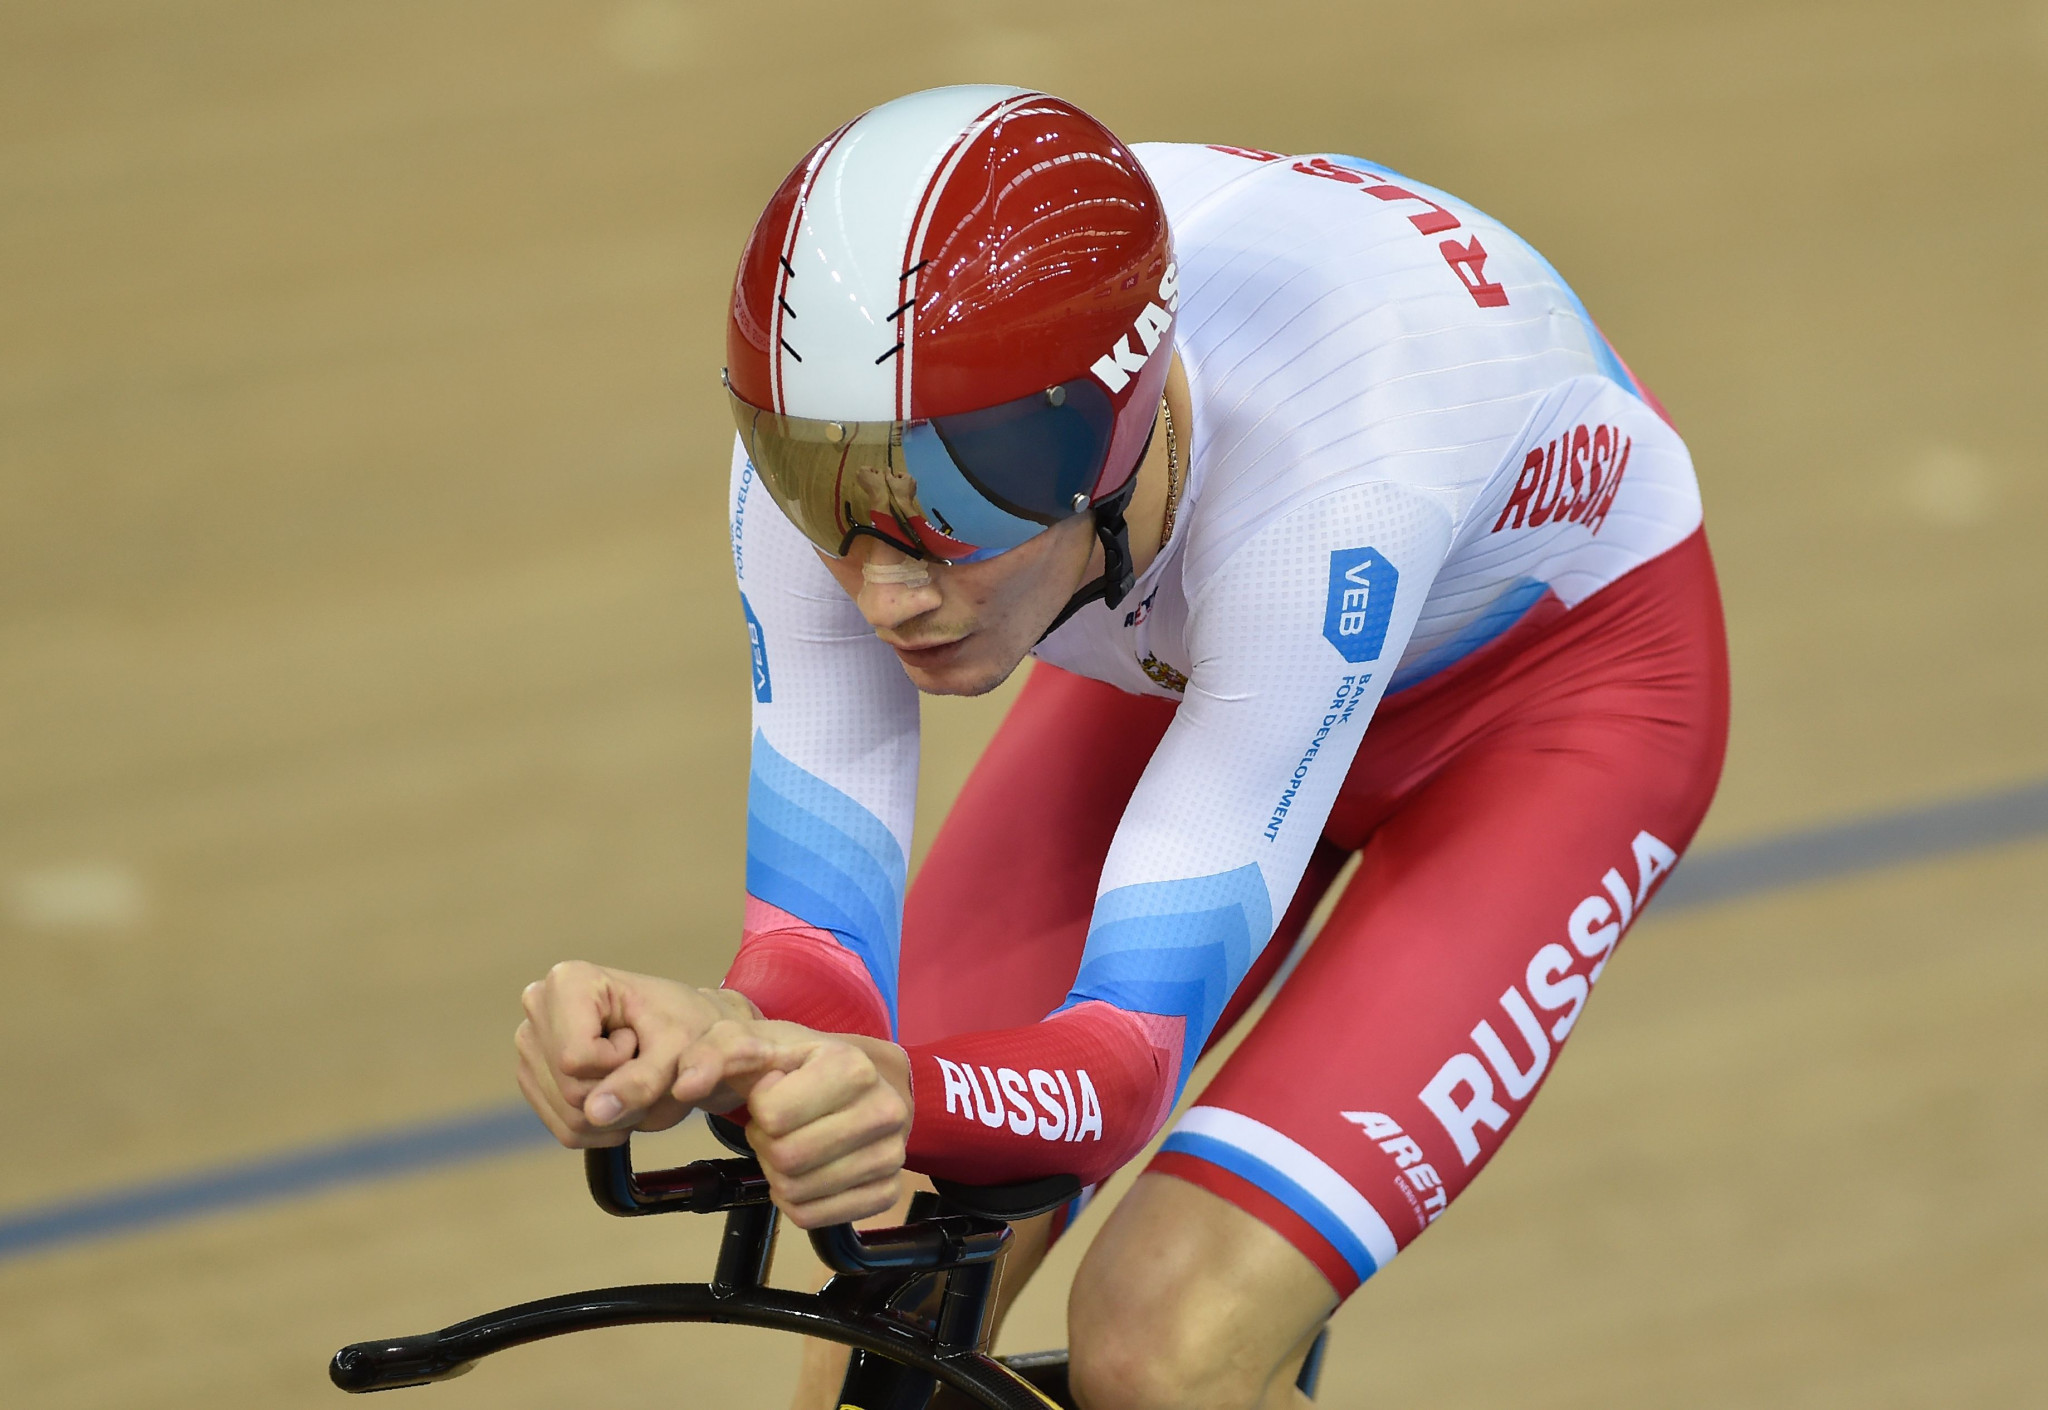 Russian cyclists fail in legal bid against WADA and McLaren after Rio 2016 exclusion